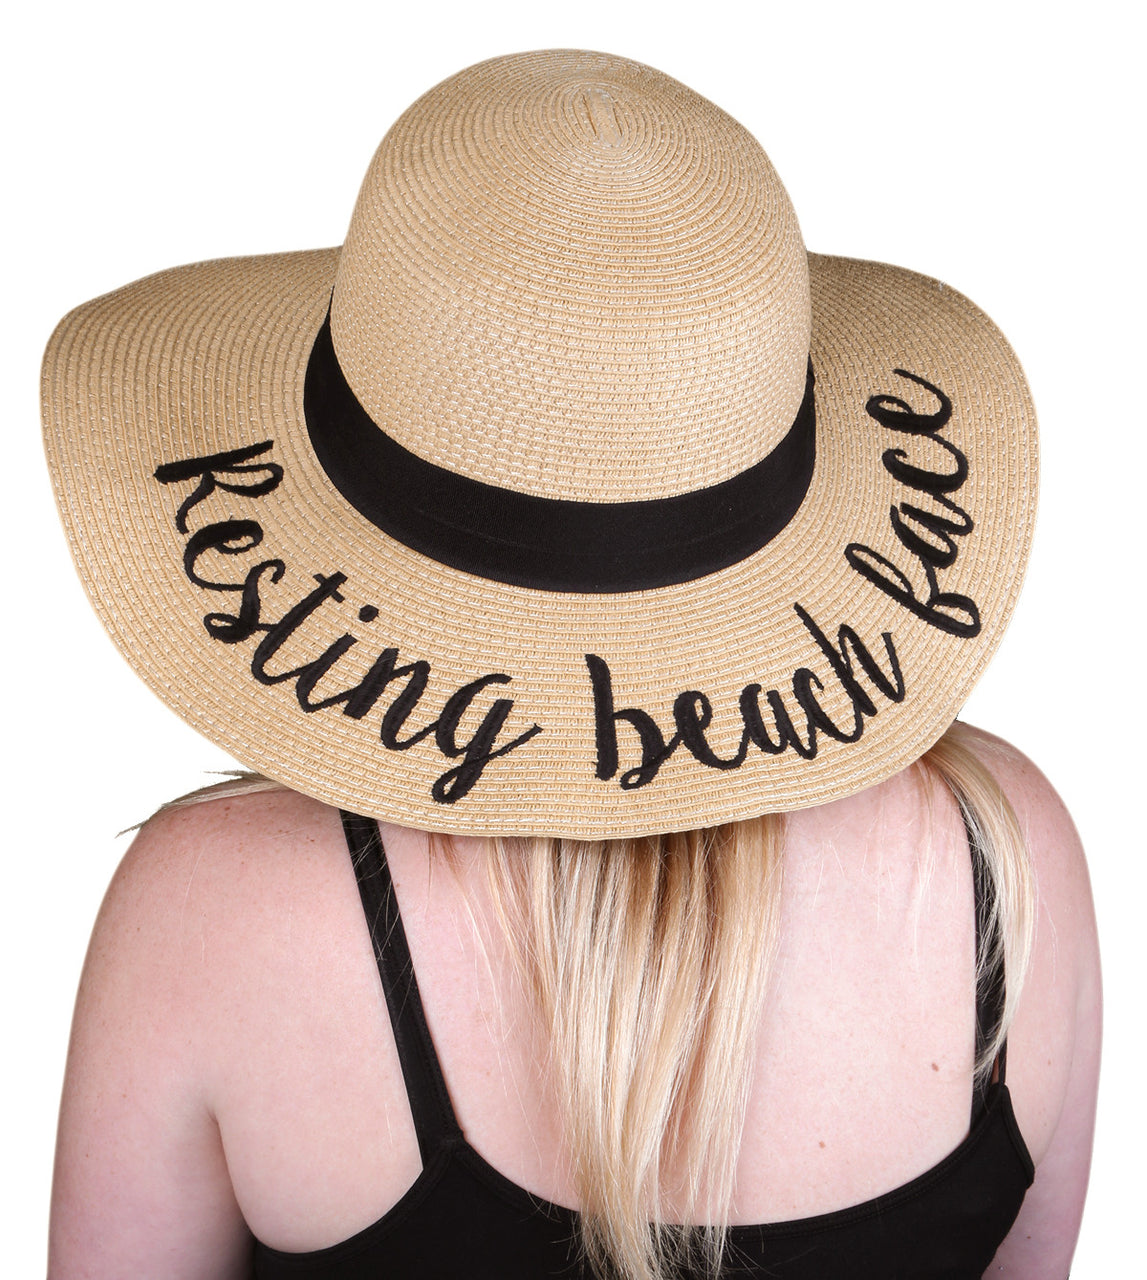 C.C Embroidered Sun Hat - Resting Beach Face – FUNKY JUNQUE 07d548759a7